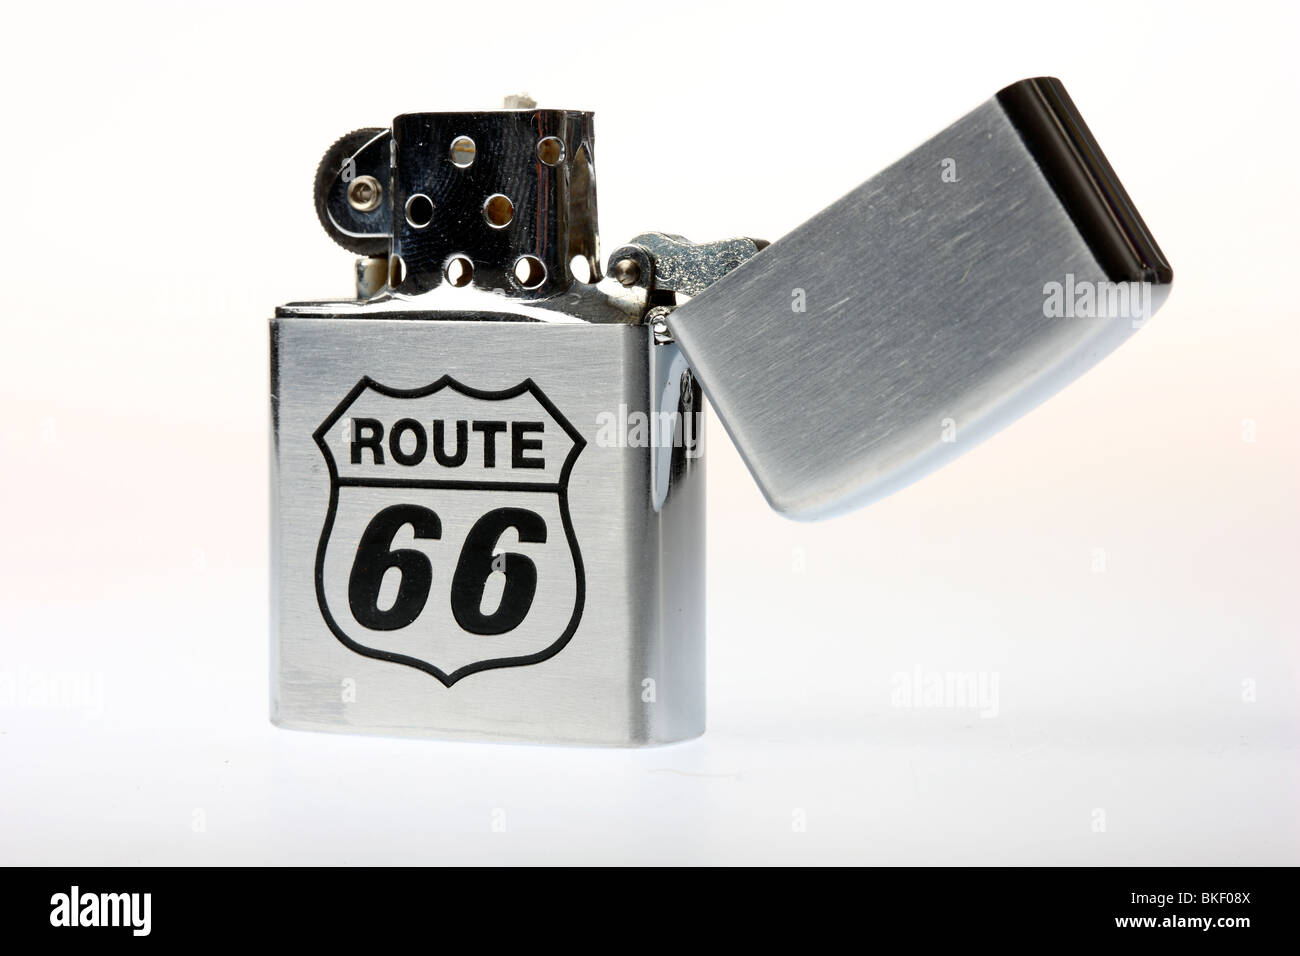 fuel lighter with print, engraving, Route 66, Zippo model - Stock Image